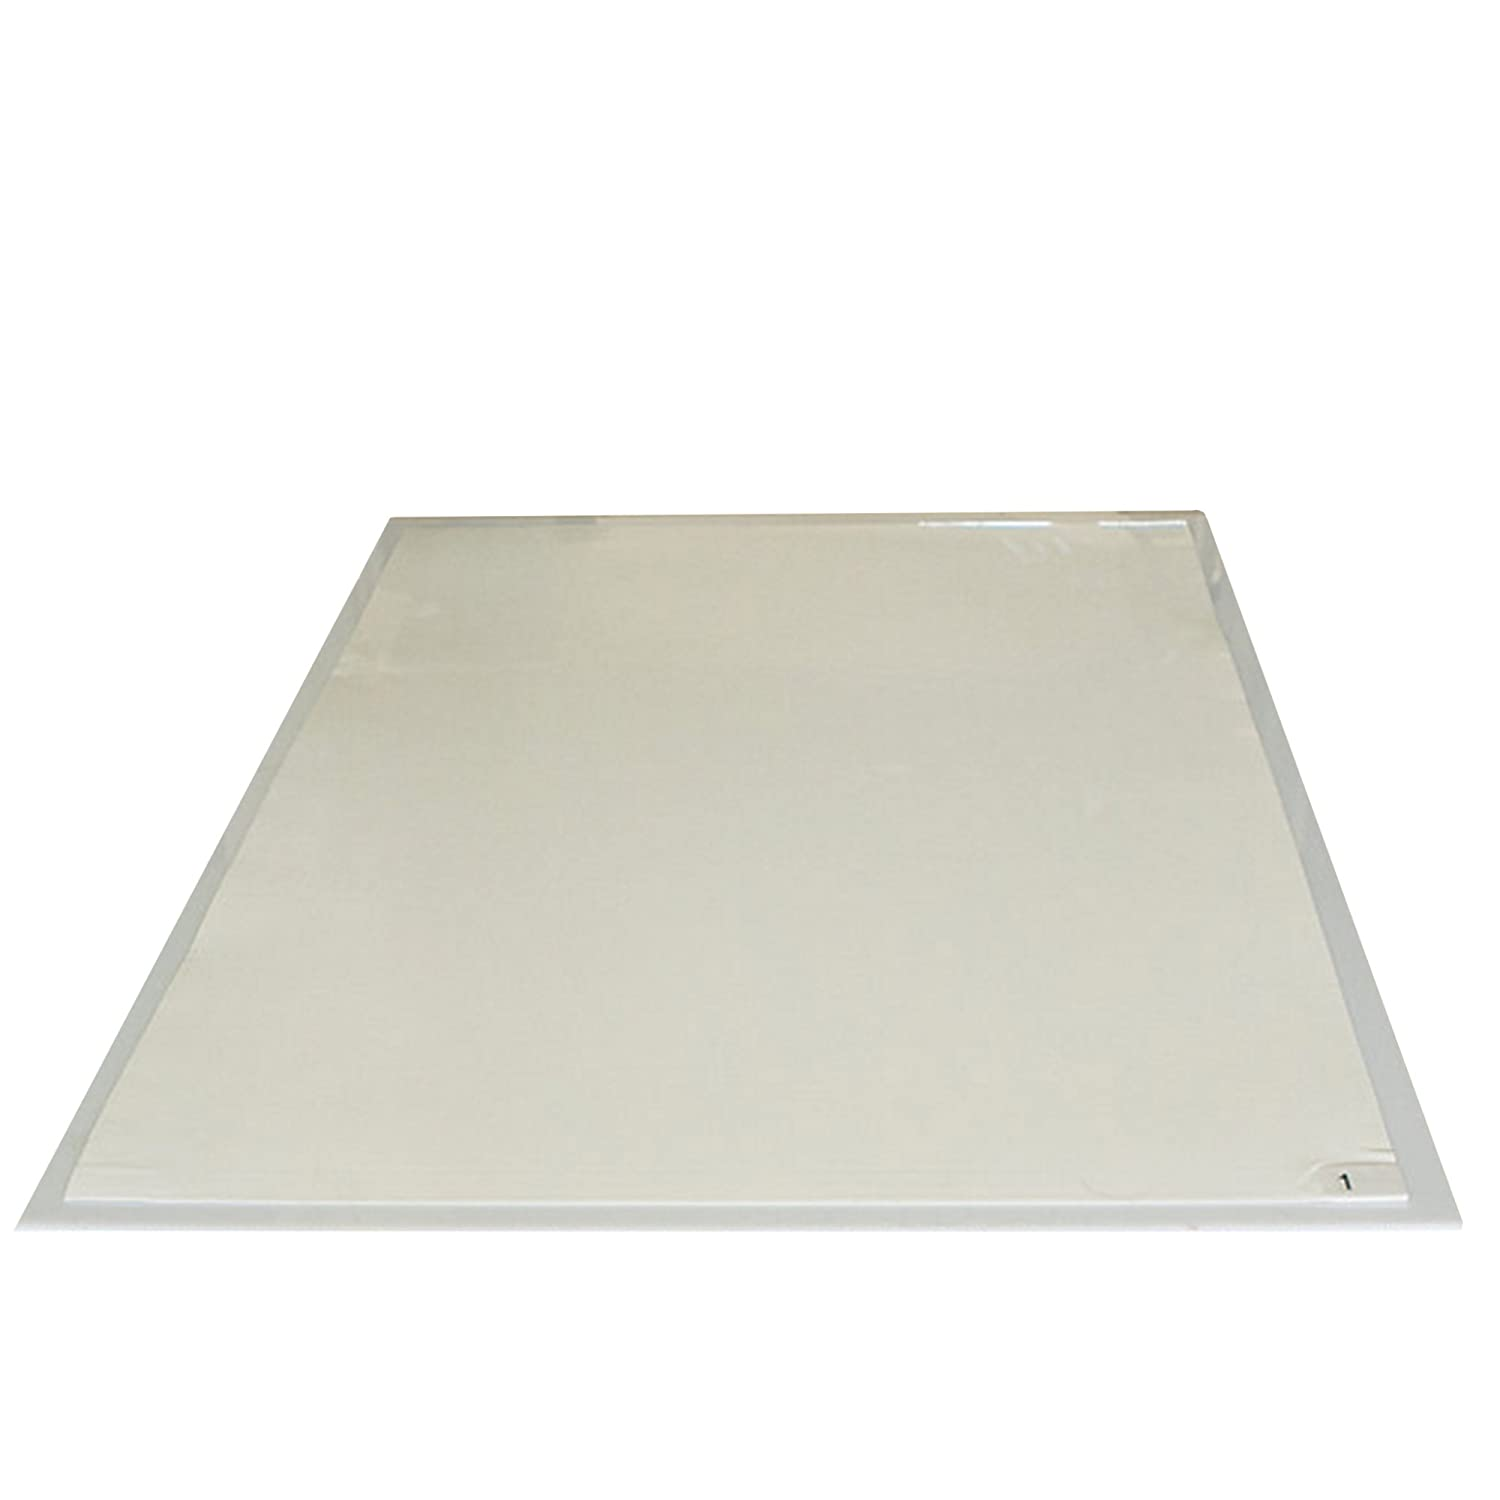 Plasticover Non-Skid Base for Sticky Floor Protection Clean Room Mat, 24 Wide by 36 Long PCSB2436